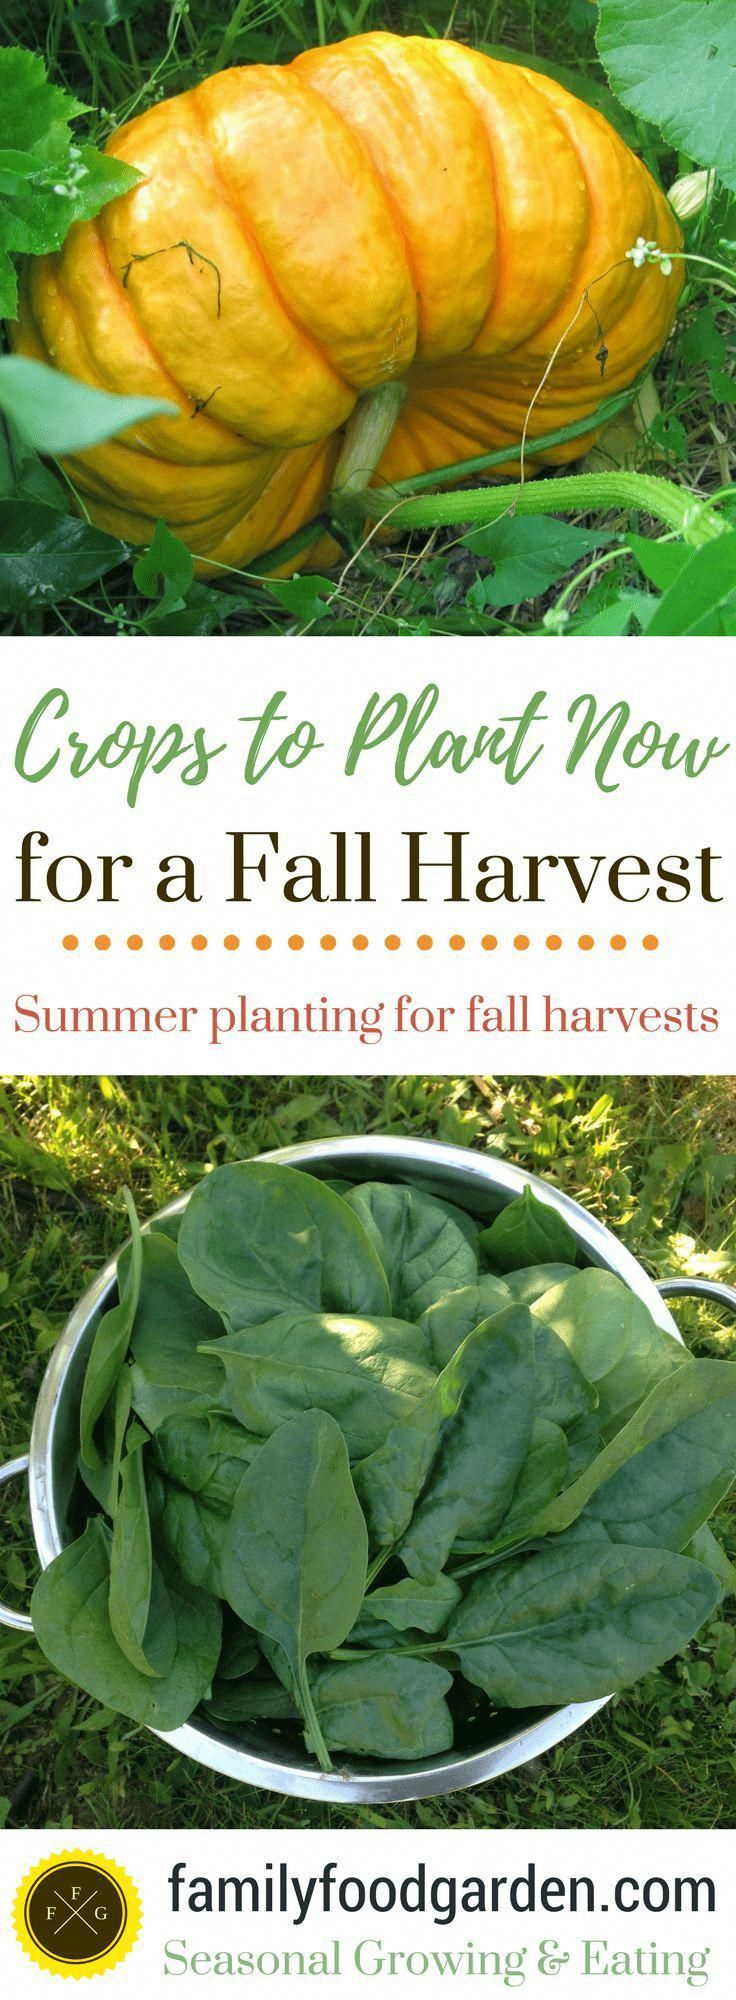 30 Summer Crops to Plant for a Fall Harvest